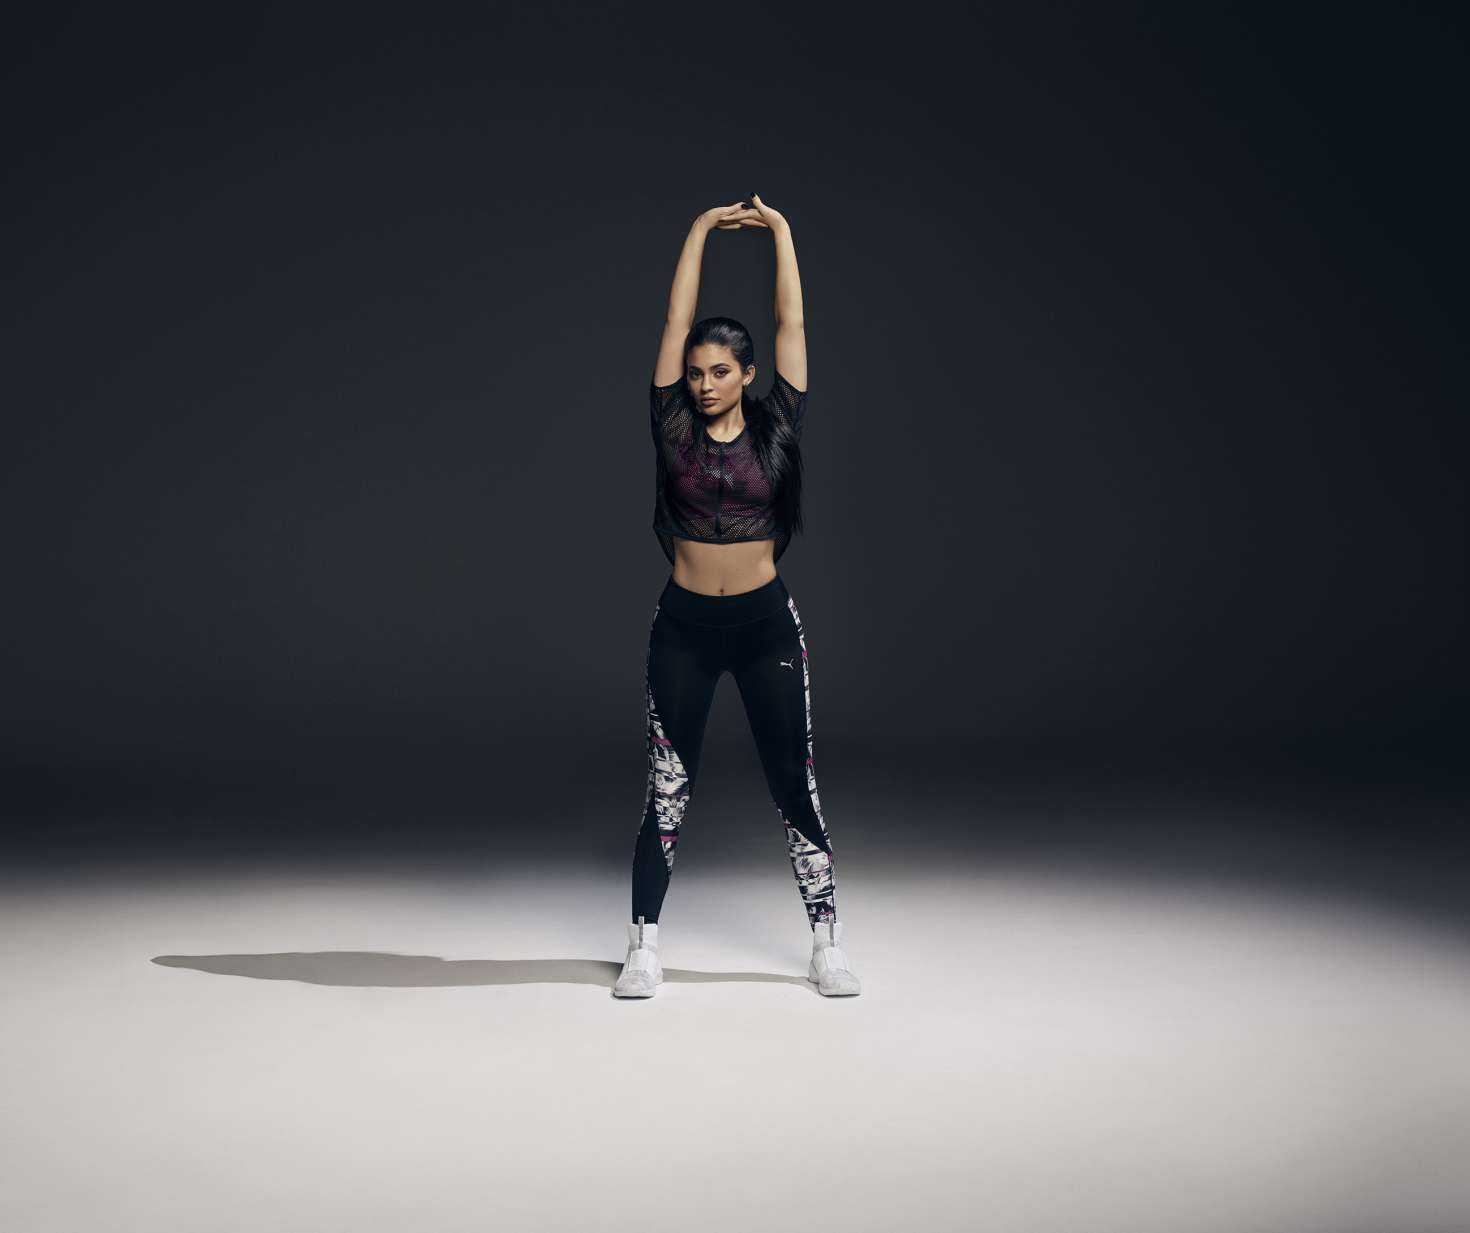 Kylie Jenner flaunts incredible physique for Puma's Spring/Summer 2017 Campaign